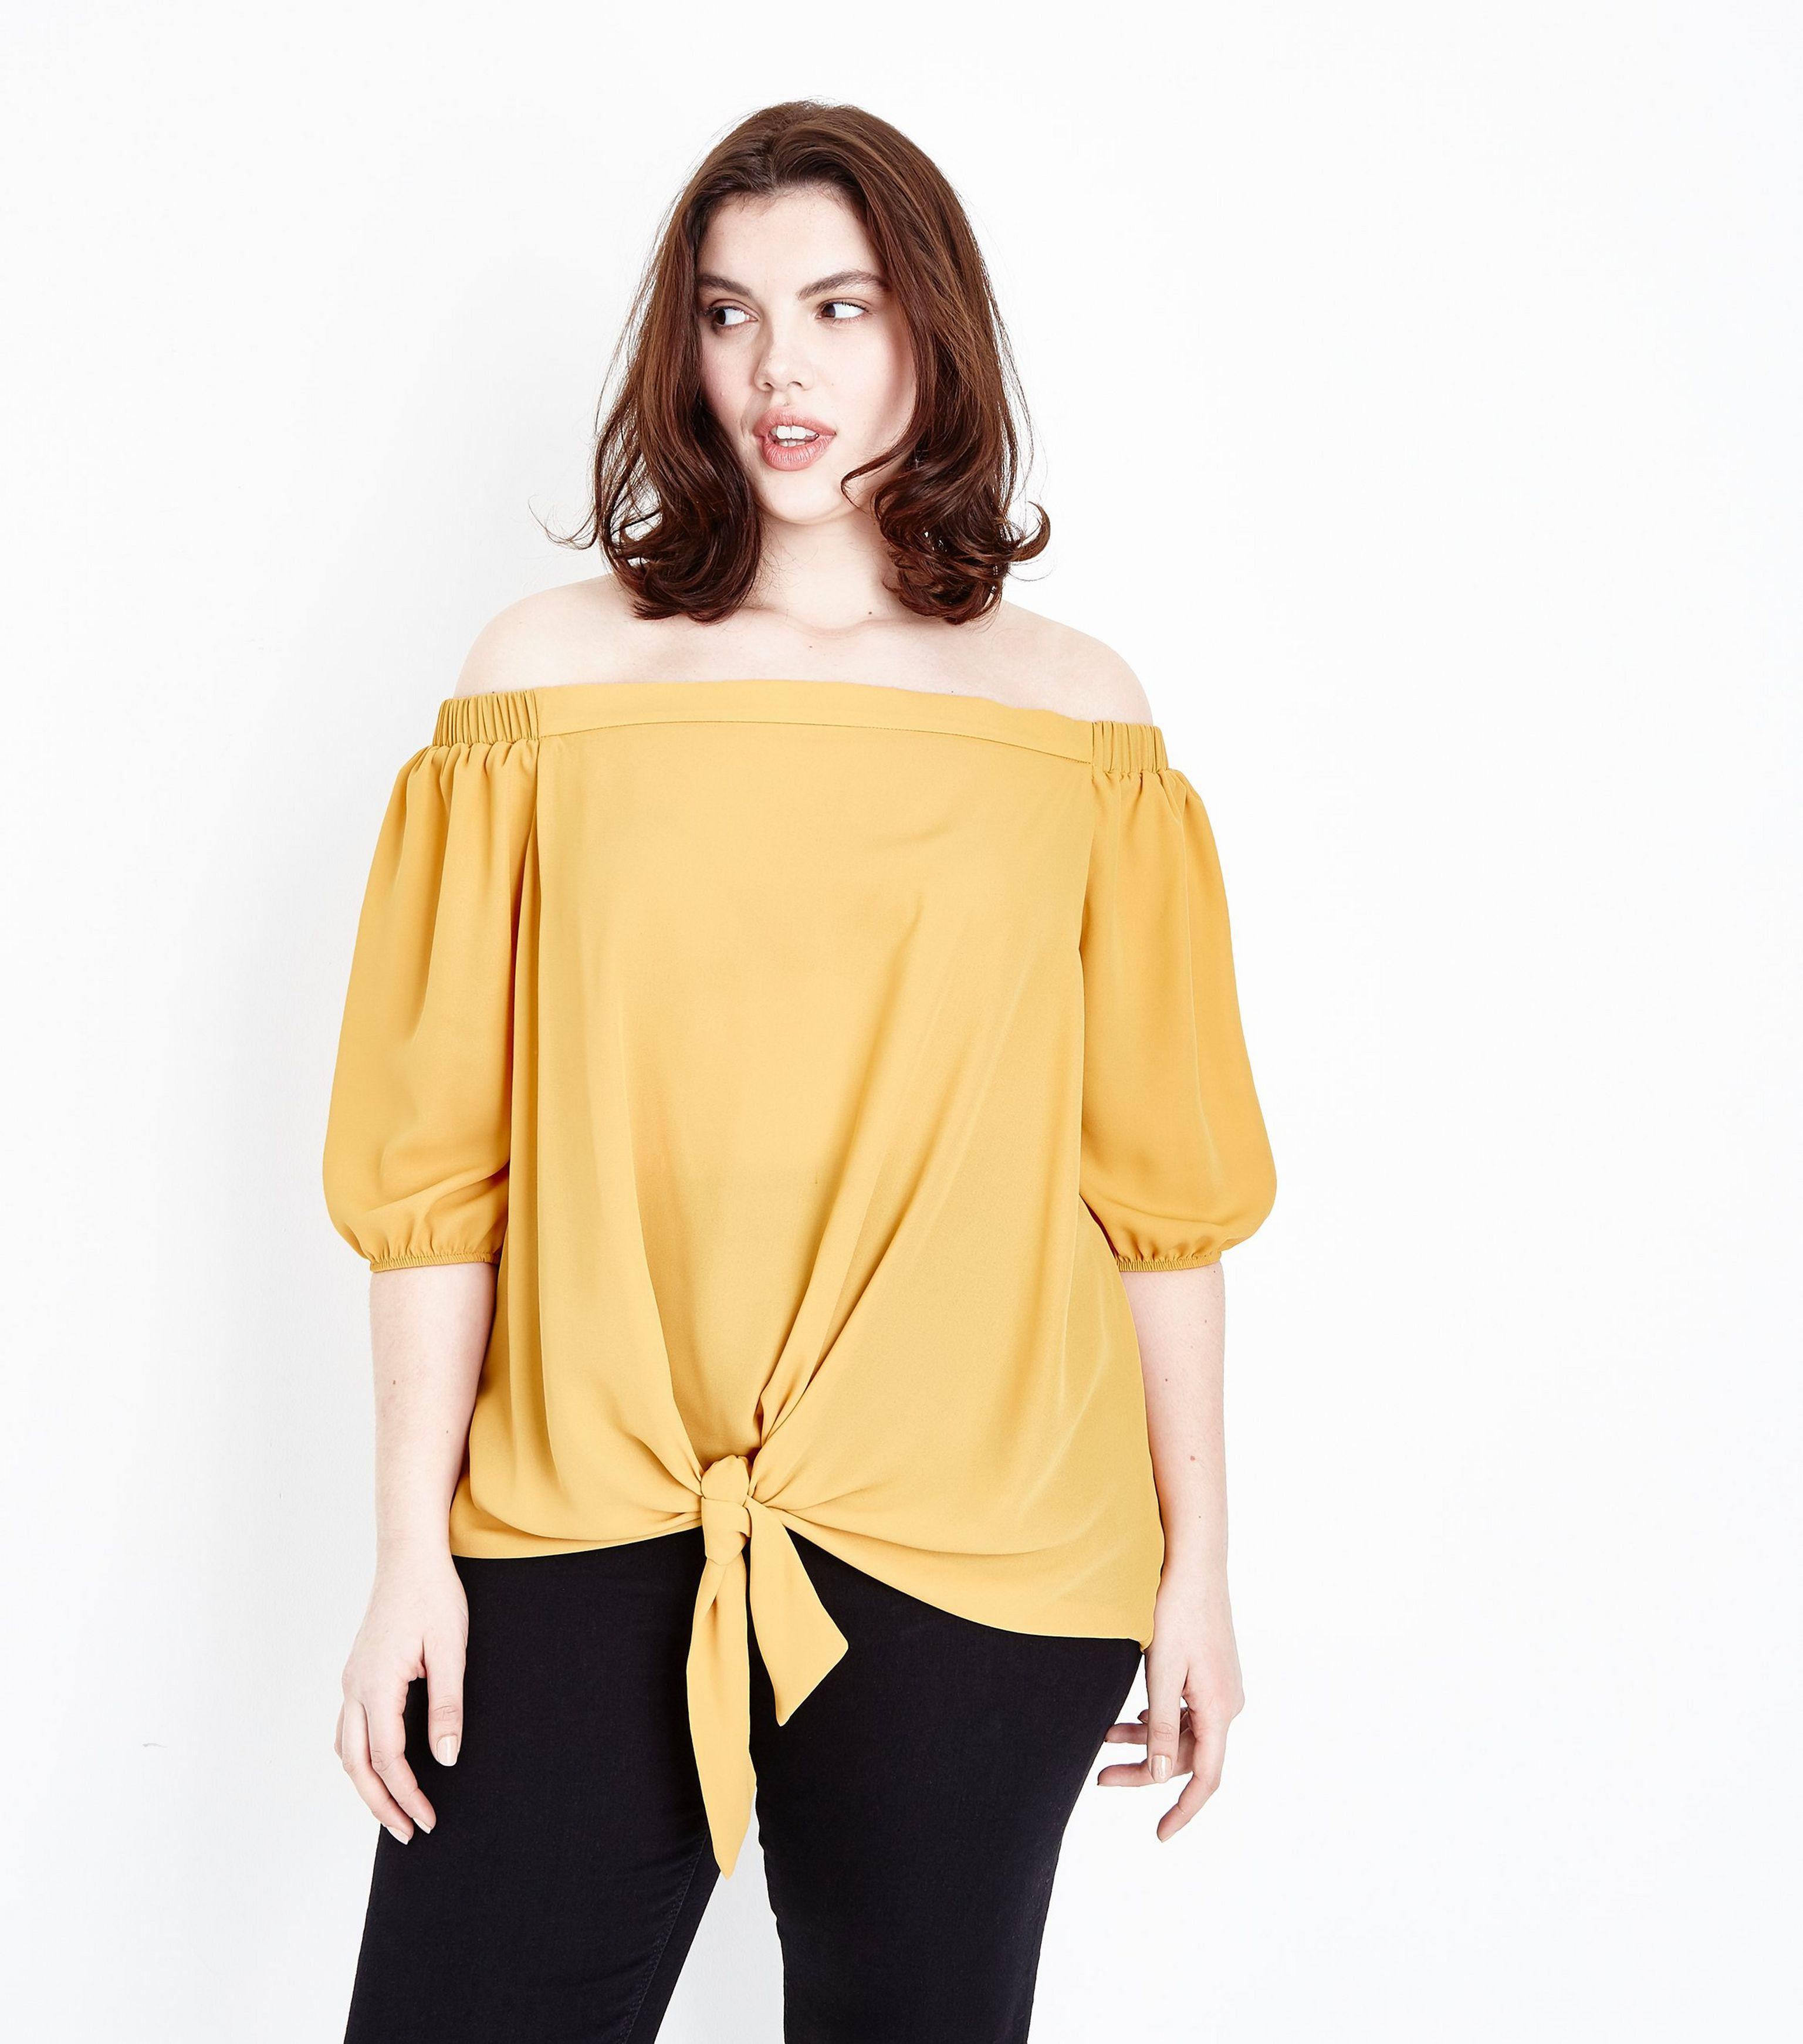 42048e305ec Gallery. Previously sold at: New Look · Women's White Tube Tops ...